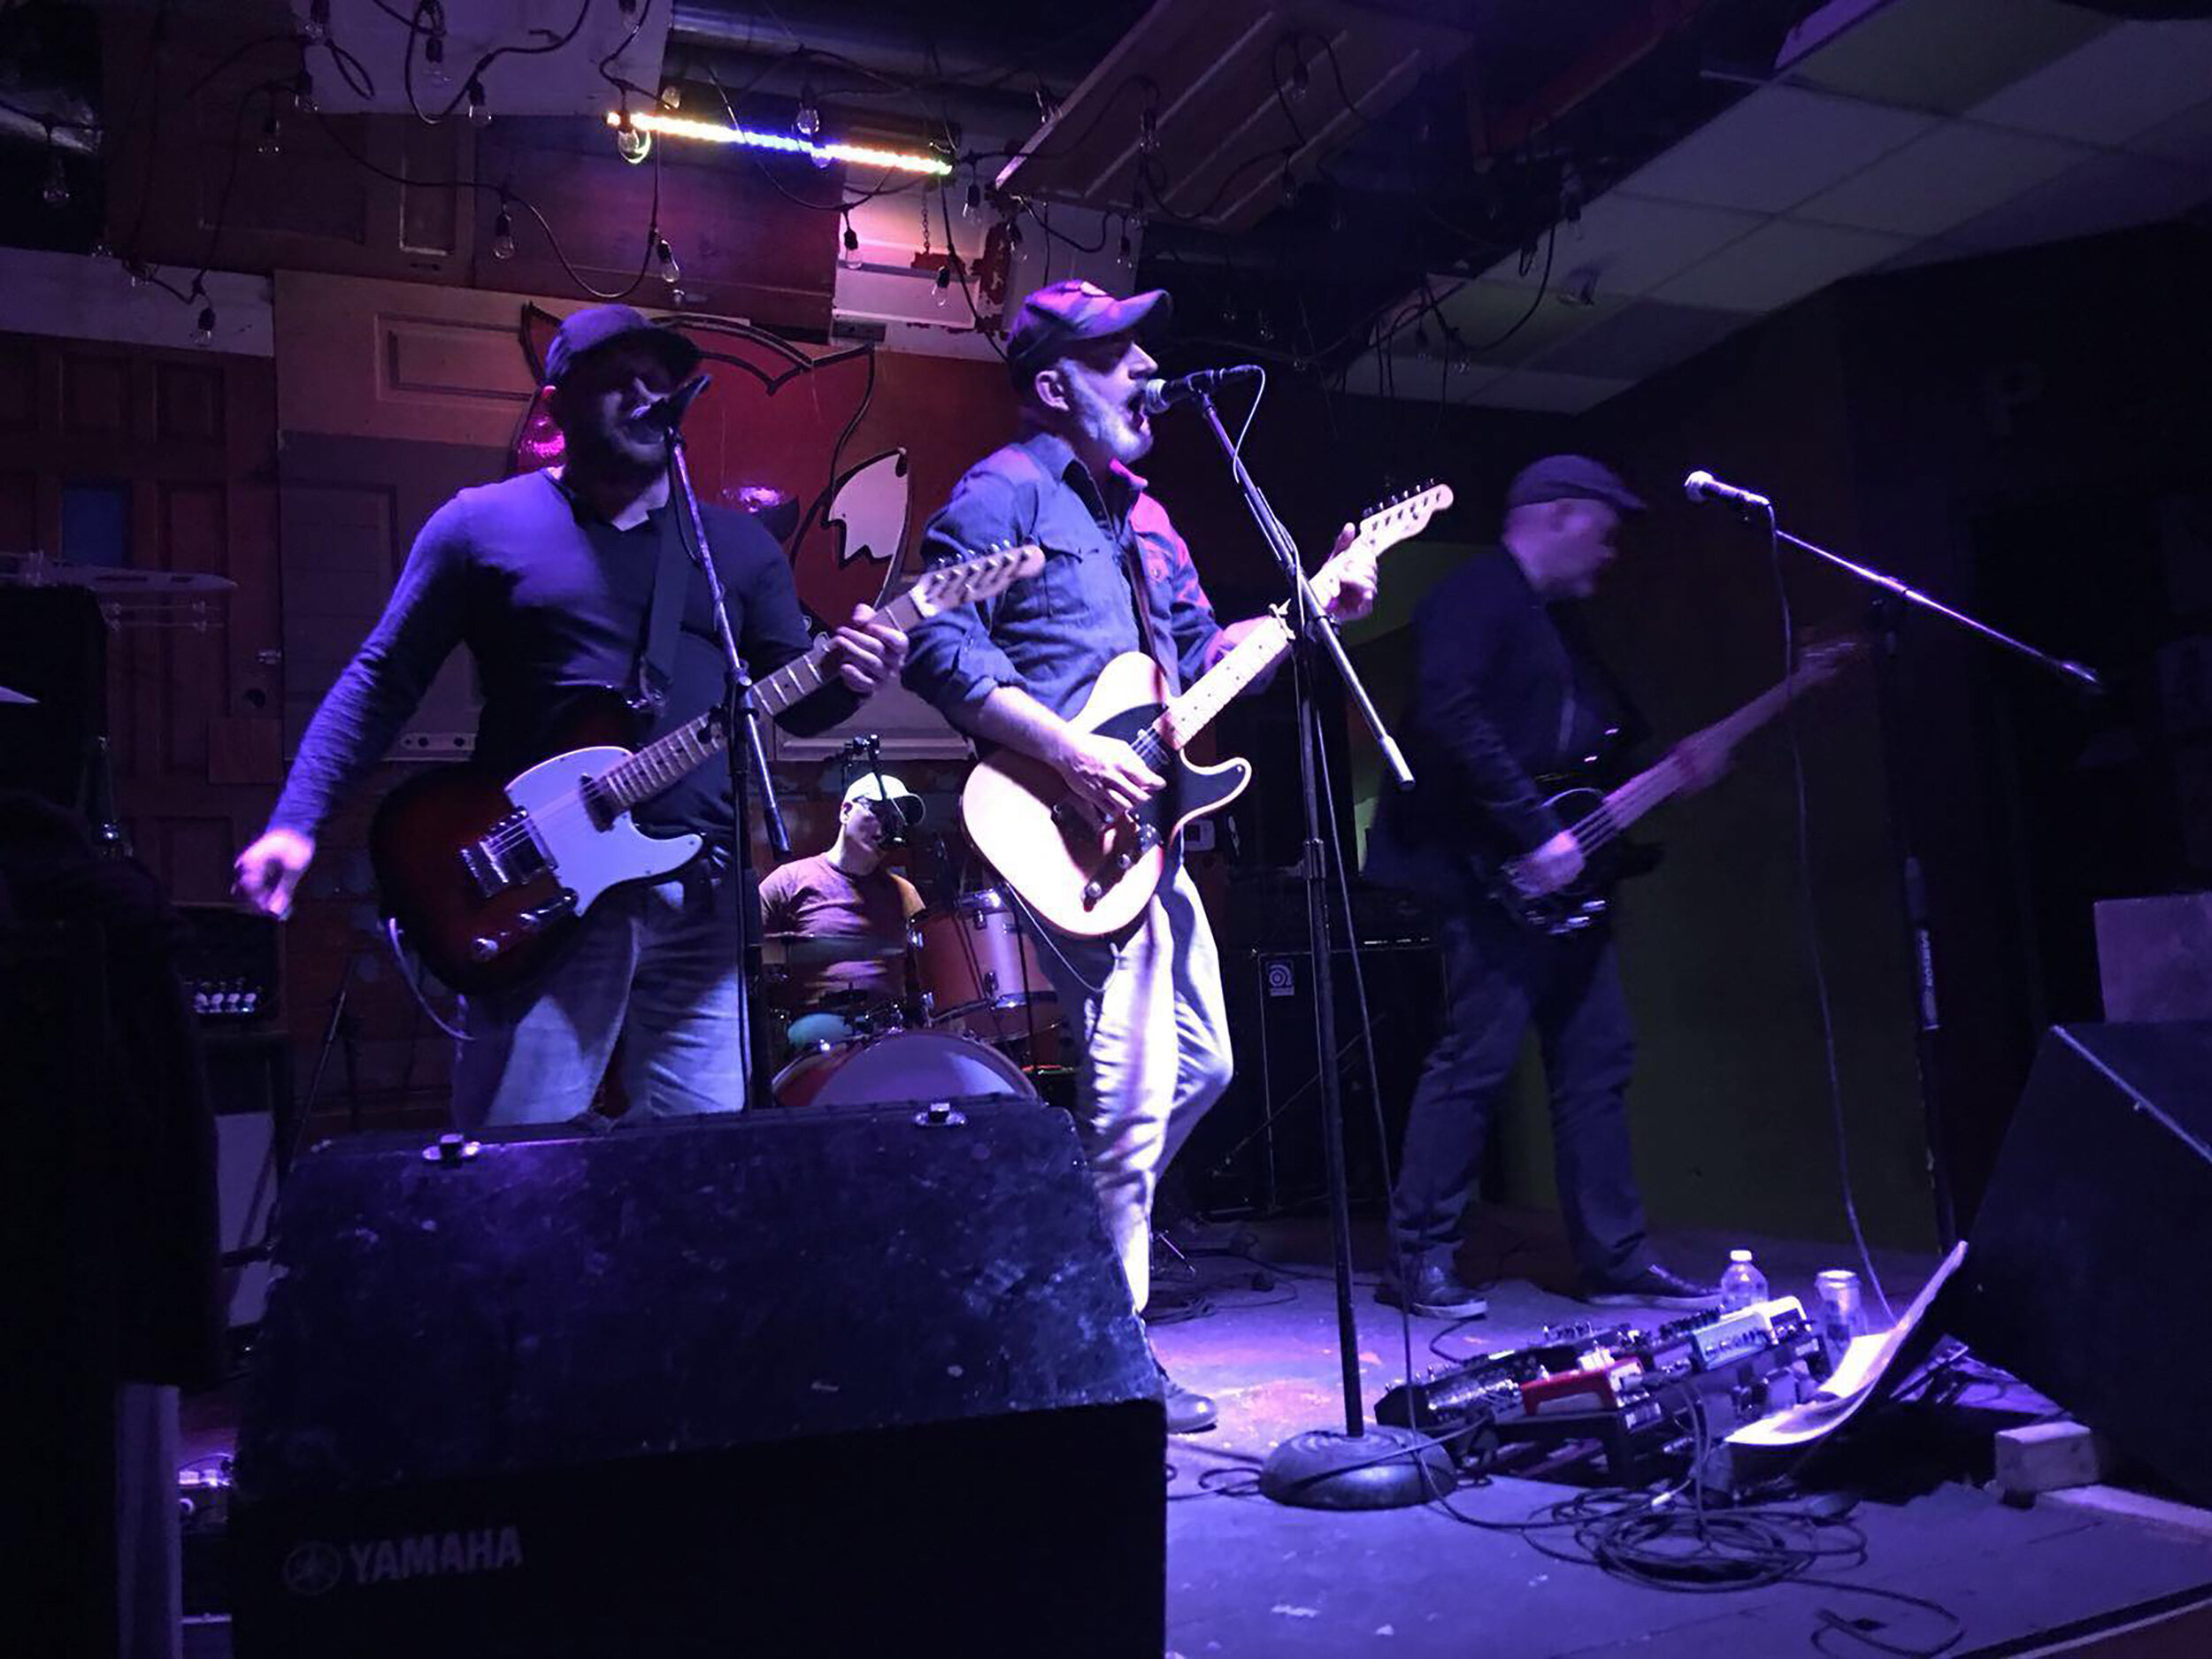 Big Furry Tractor Live in Toronto at the Hideout!   Hey Toronto friends! We're excited to be playing at the Hideout on College Ave at Bathurst. This is truly a great live music venue and an awesome bar.   Please come join us for some music and cold beverages. Would love to see you there!